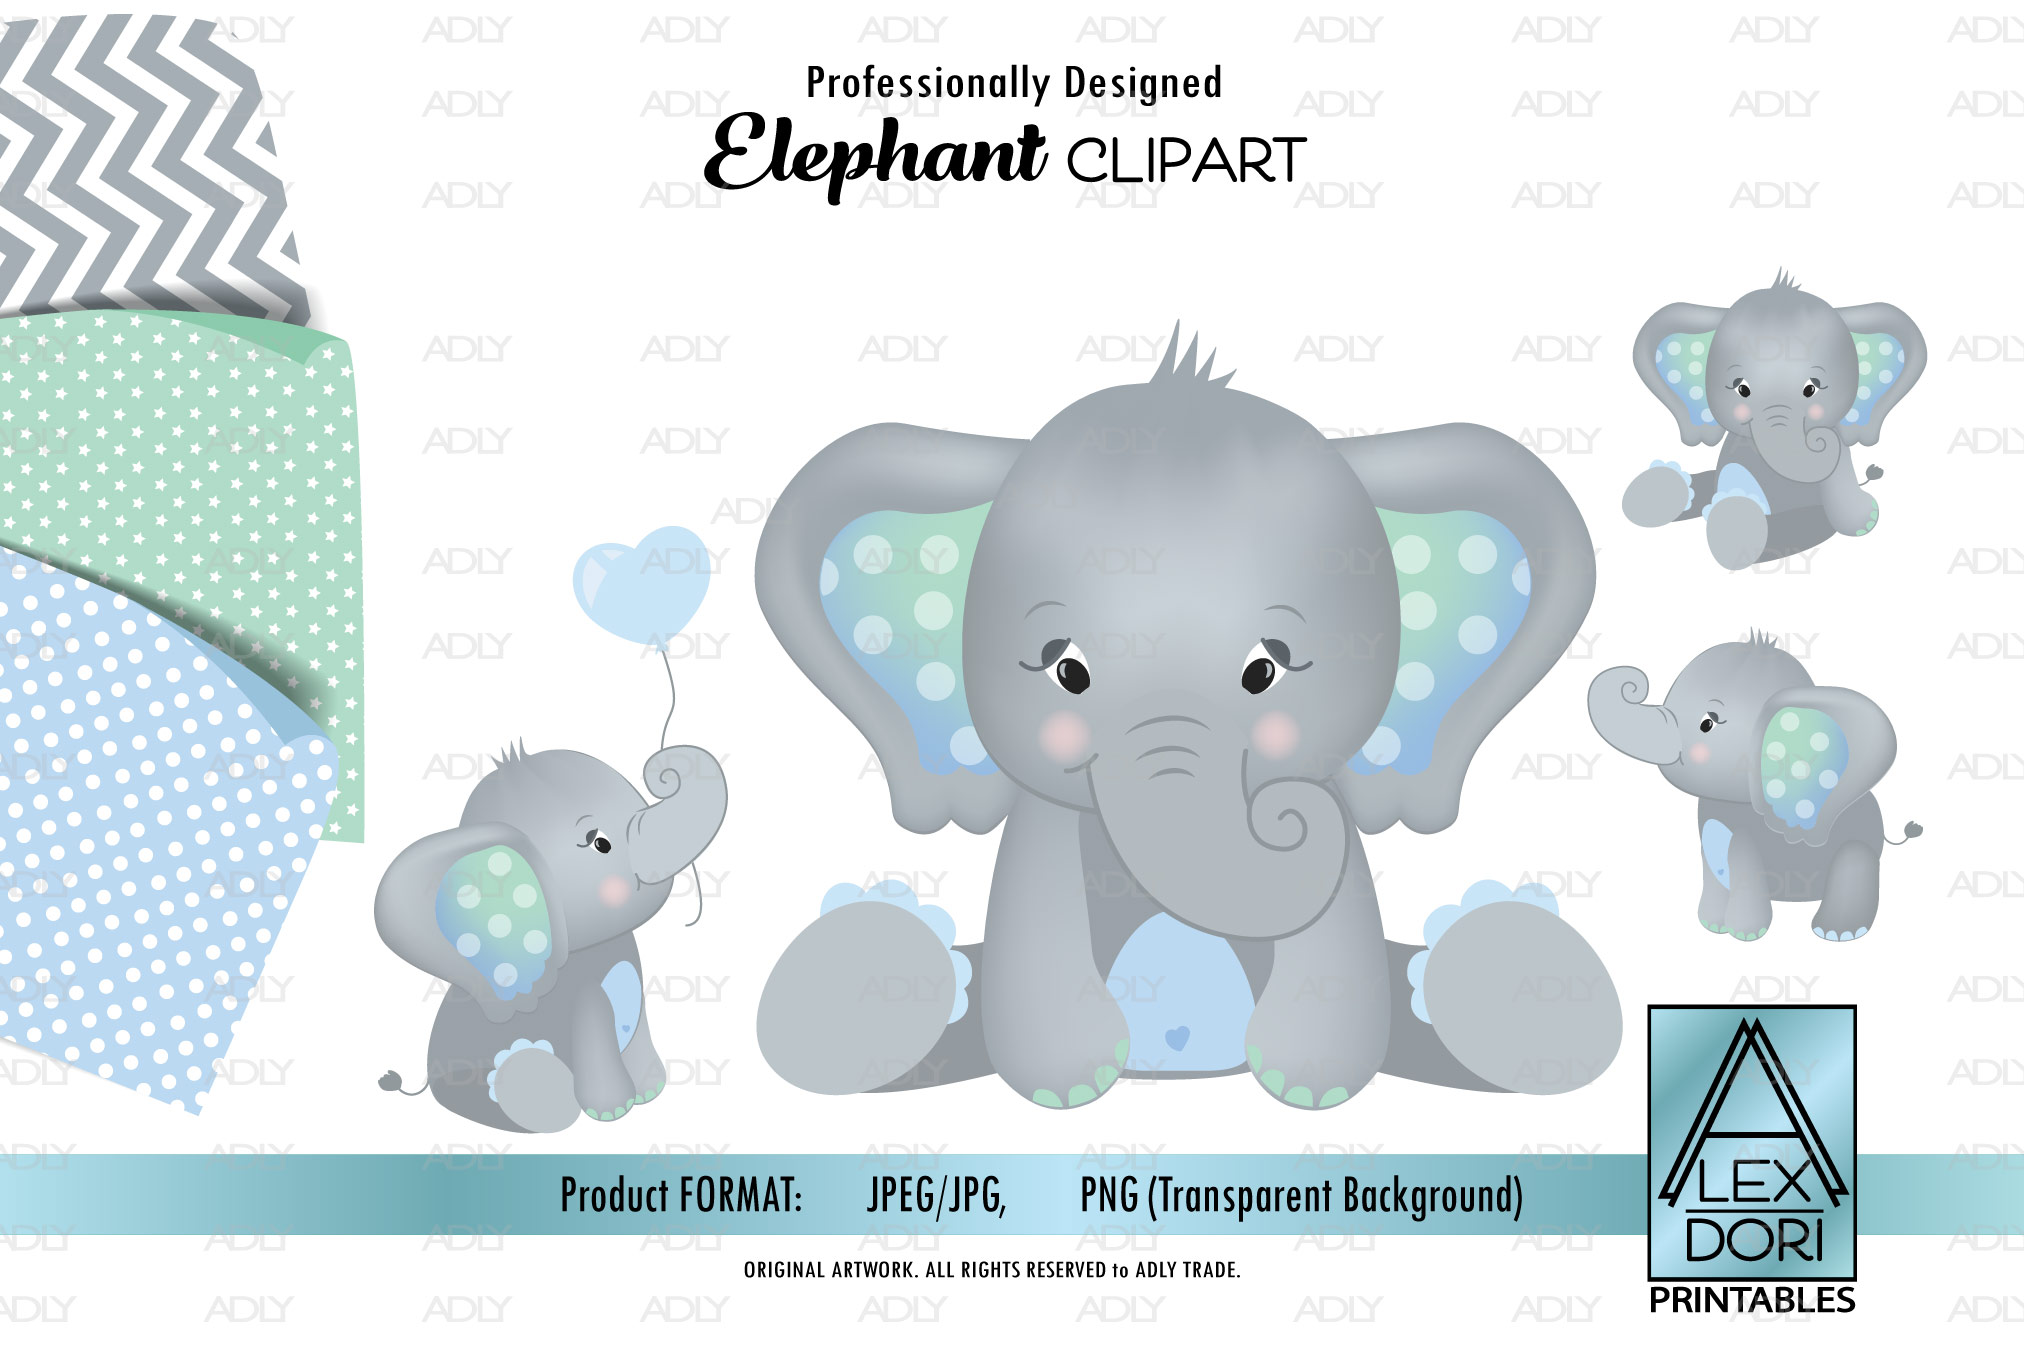 Mint Green / Baby Blue Elephant Cliparts, background set-3 example image 1